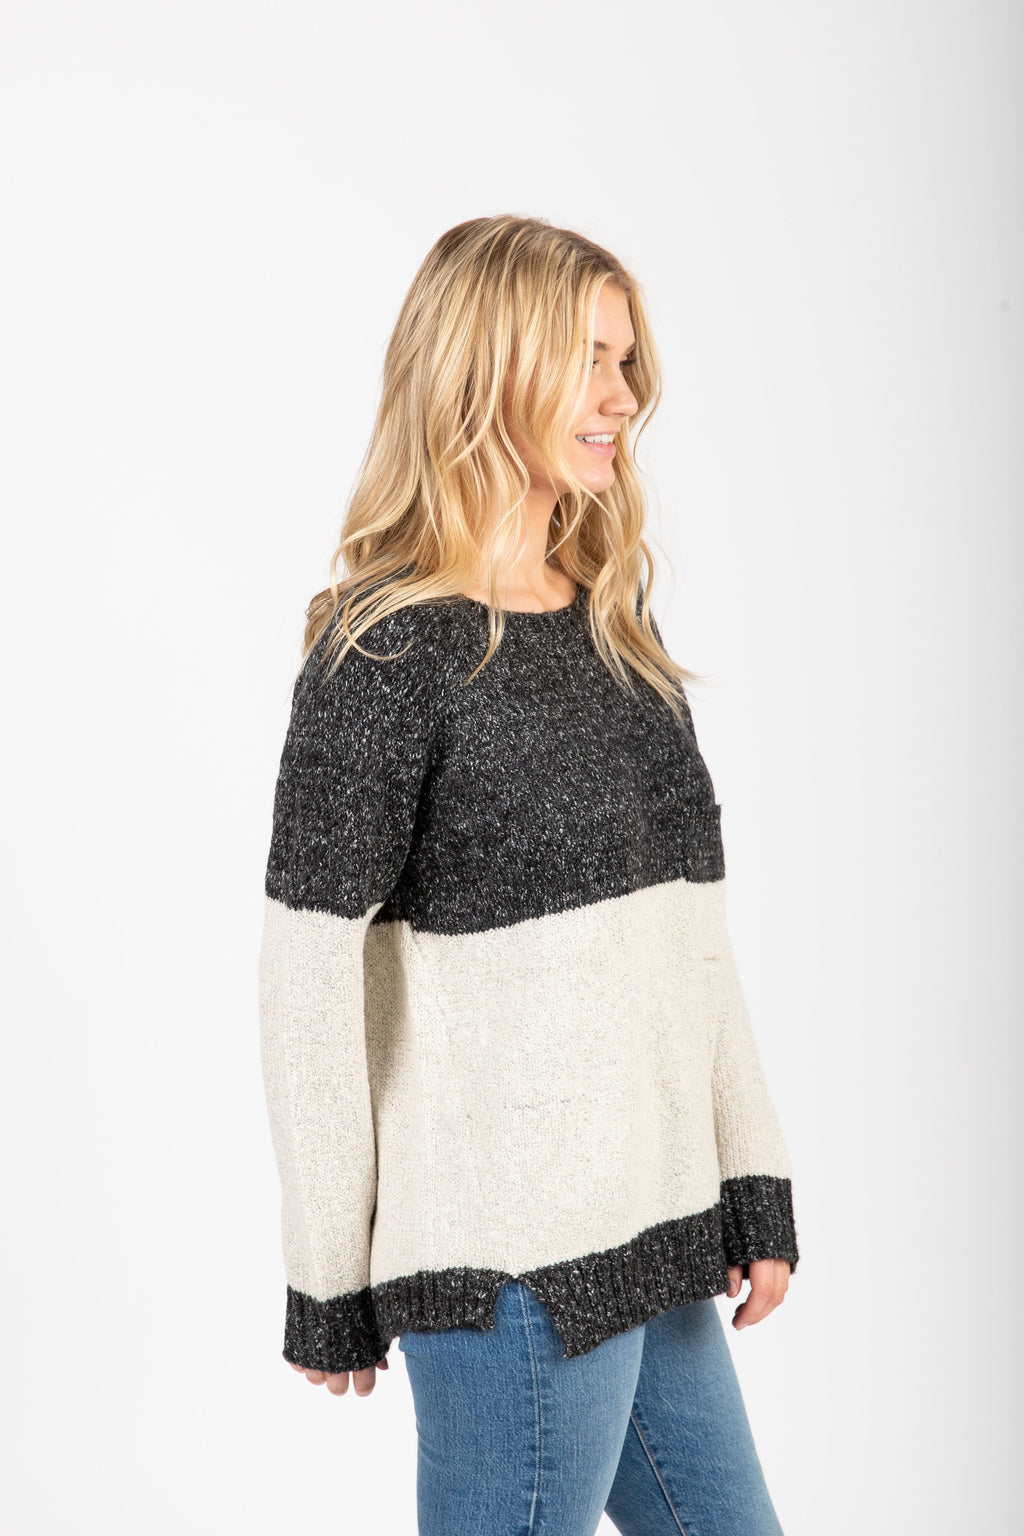 The Avenue Sweater in Black, studio shoot; side view